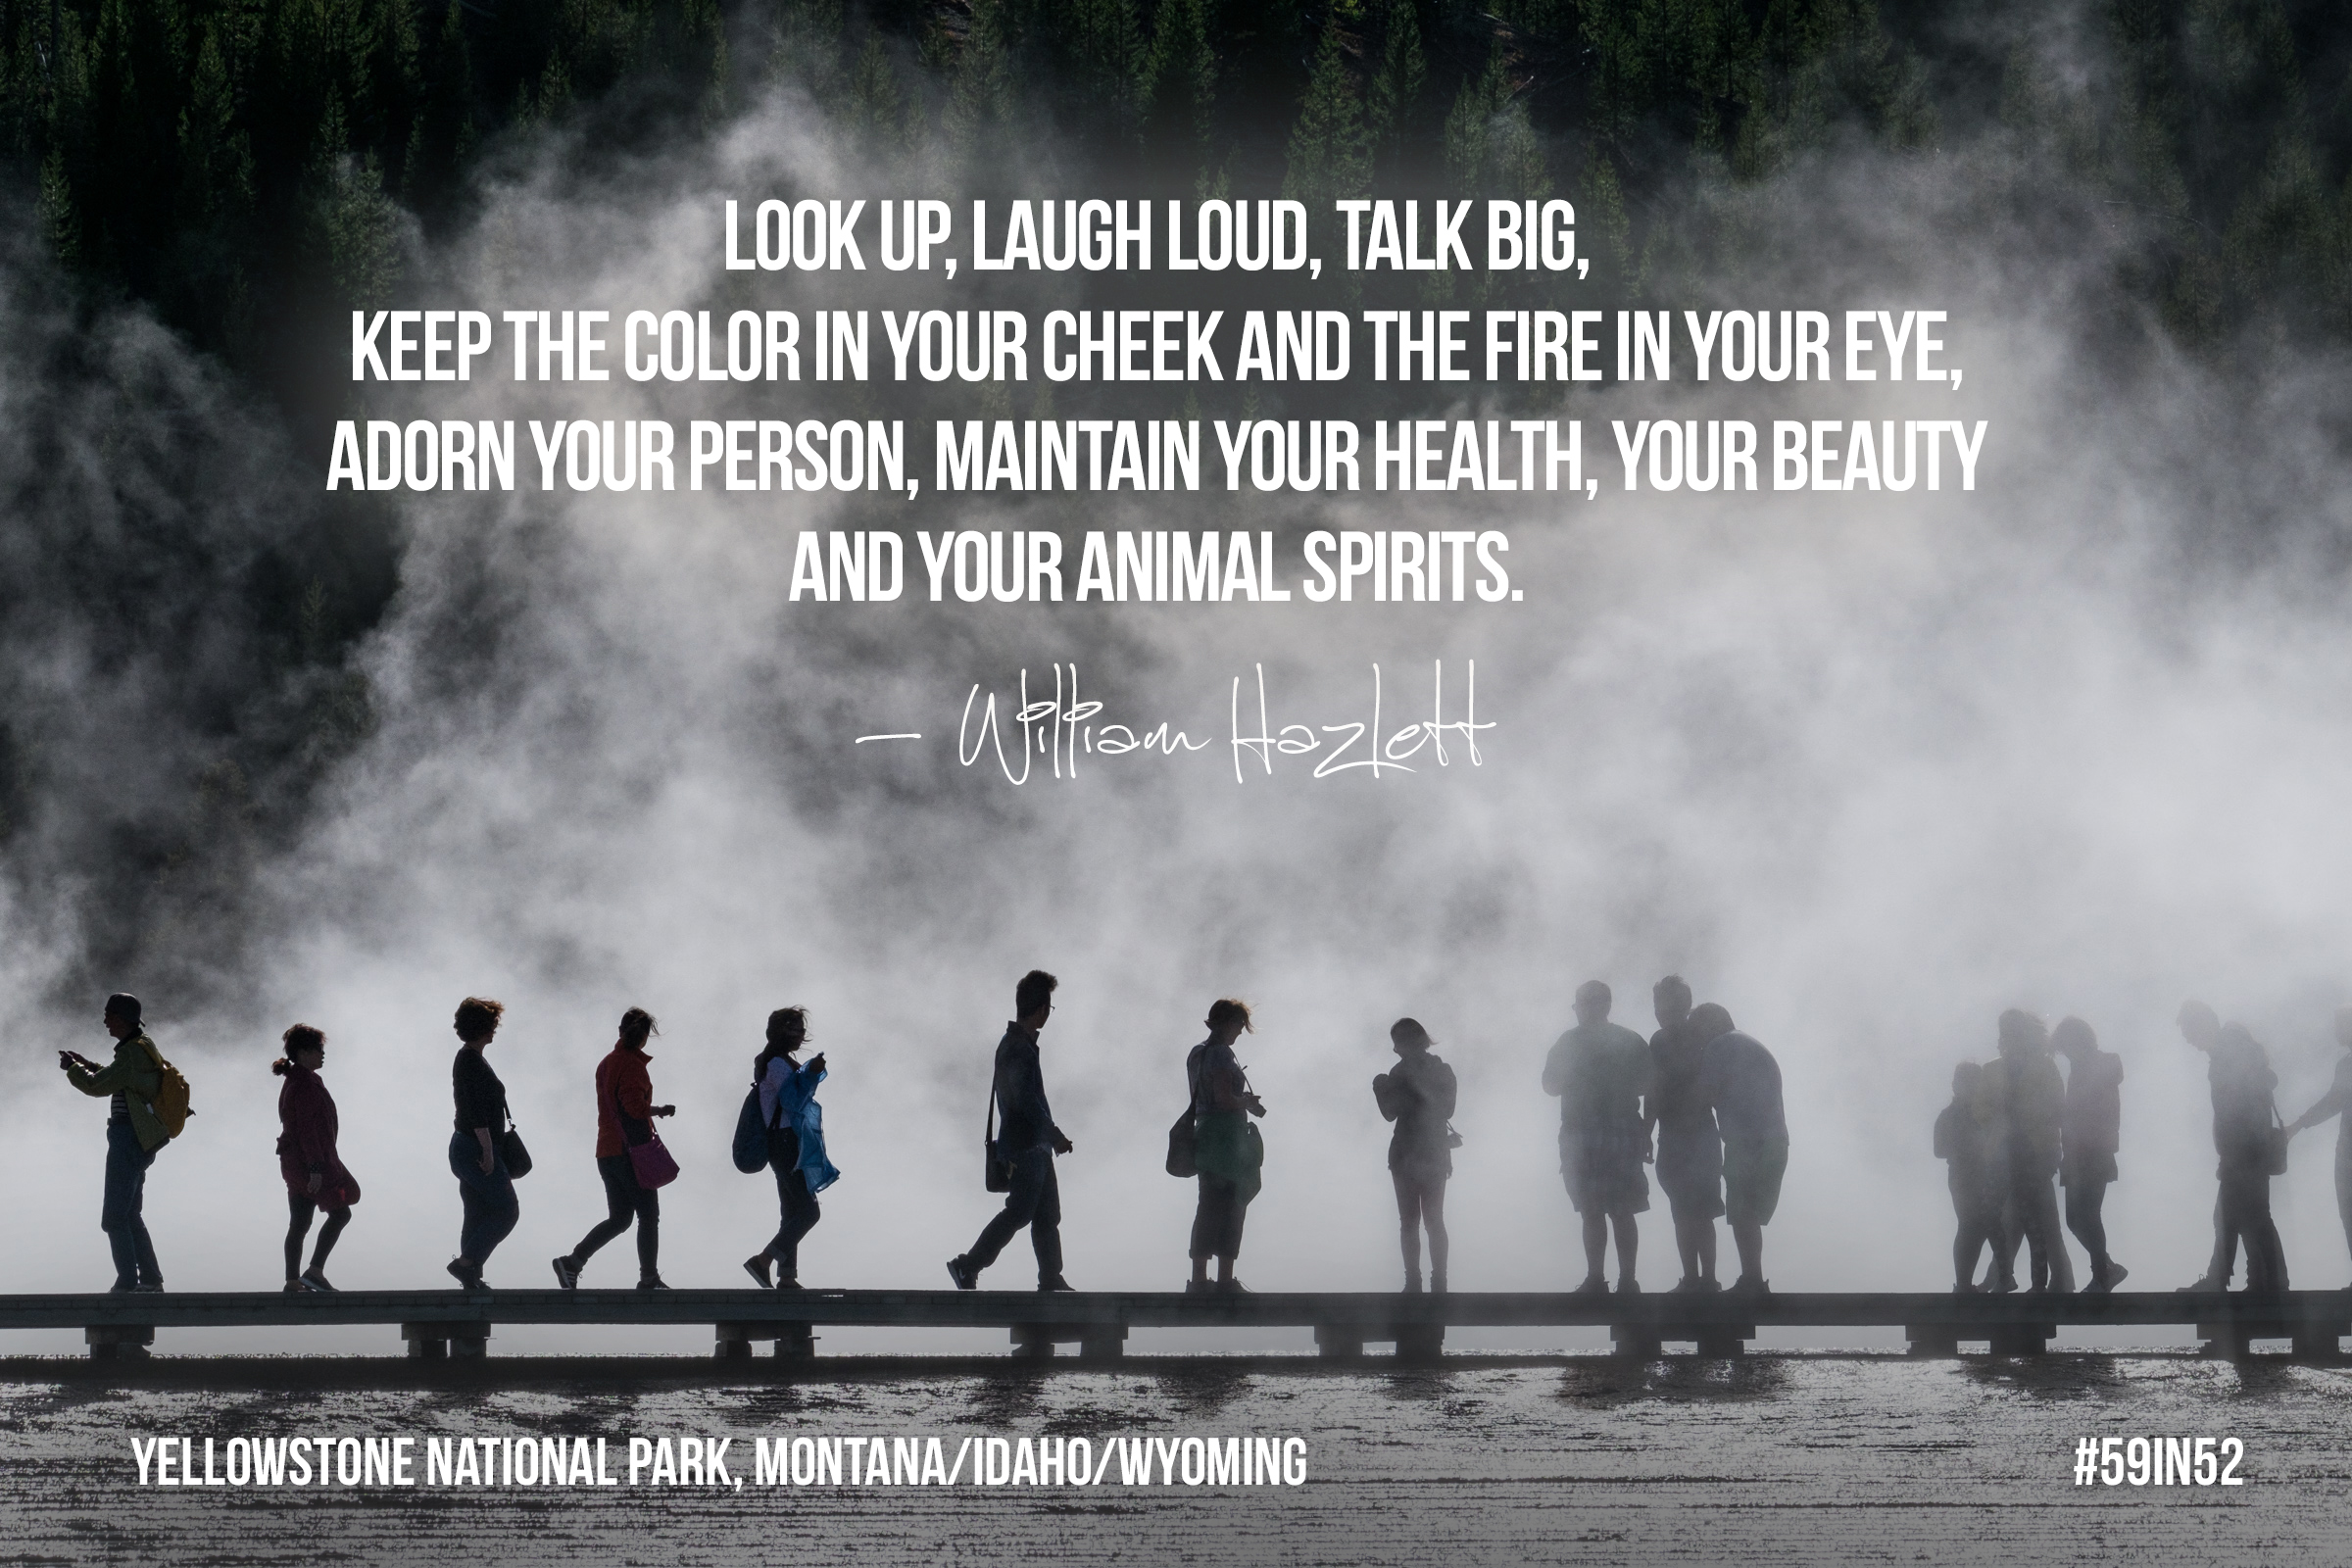 """Look up, laugh loud, talk big, keep the color in your cheek and the fire in your eye, adorn your person, maintain your health, your beauty and your animal spirits.""     -William Hazlitt"